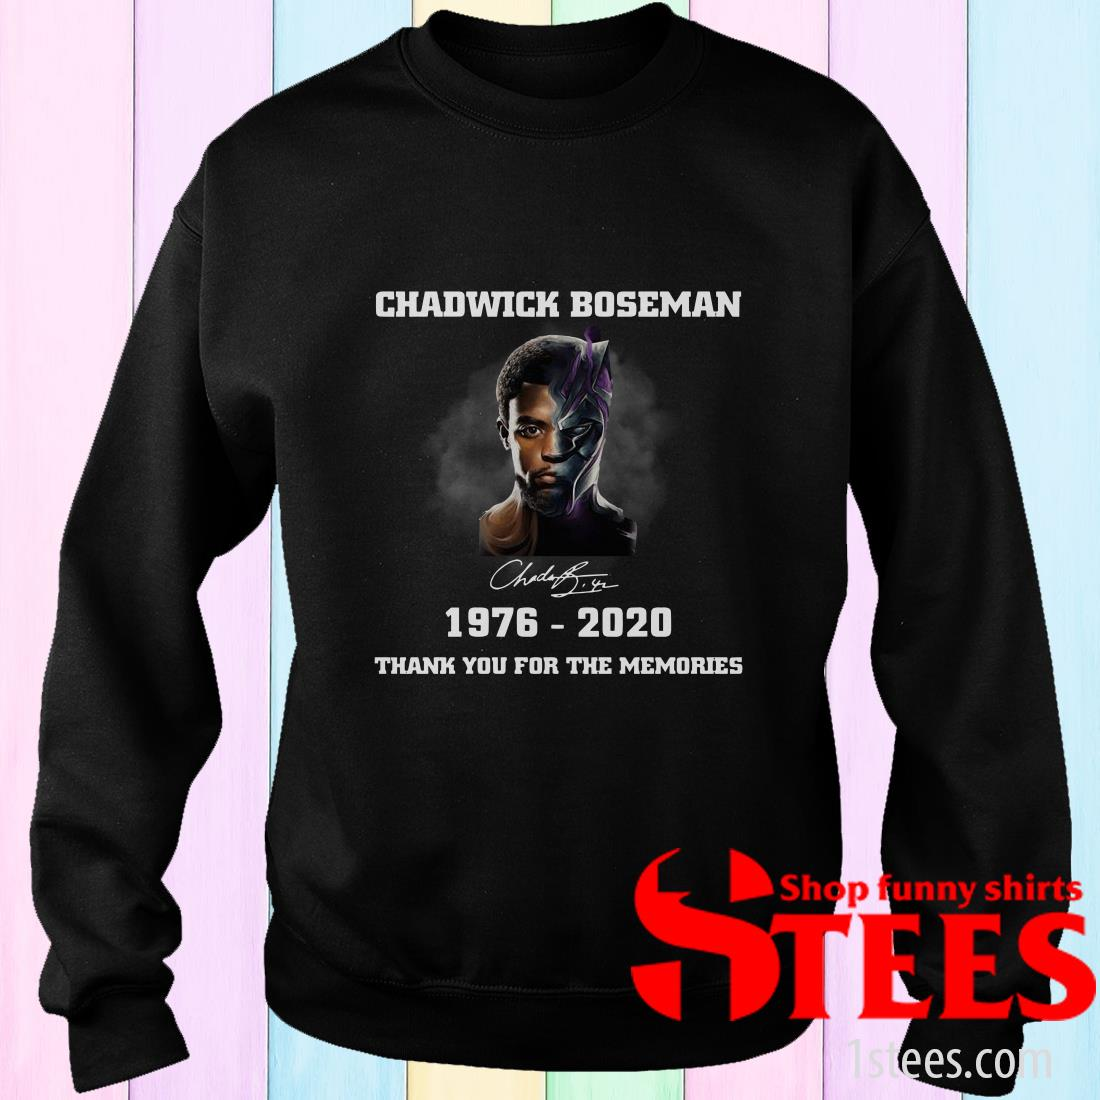 Chadwick Boseman Signature 1976-2020 Thank You For The Memories Sweater